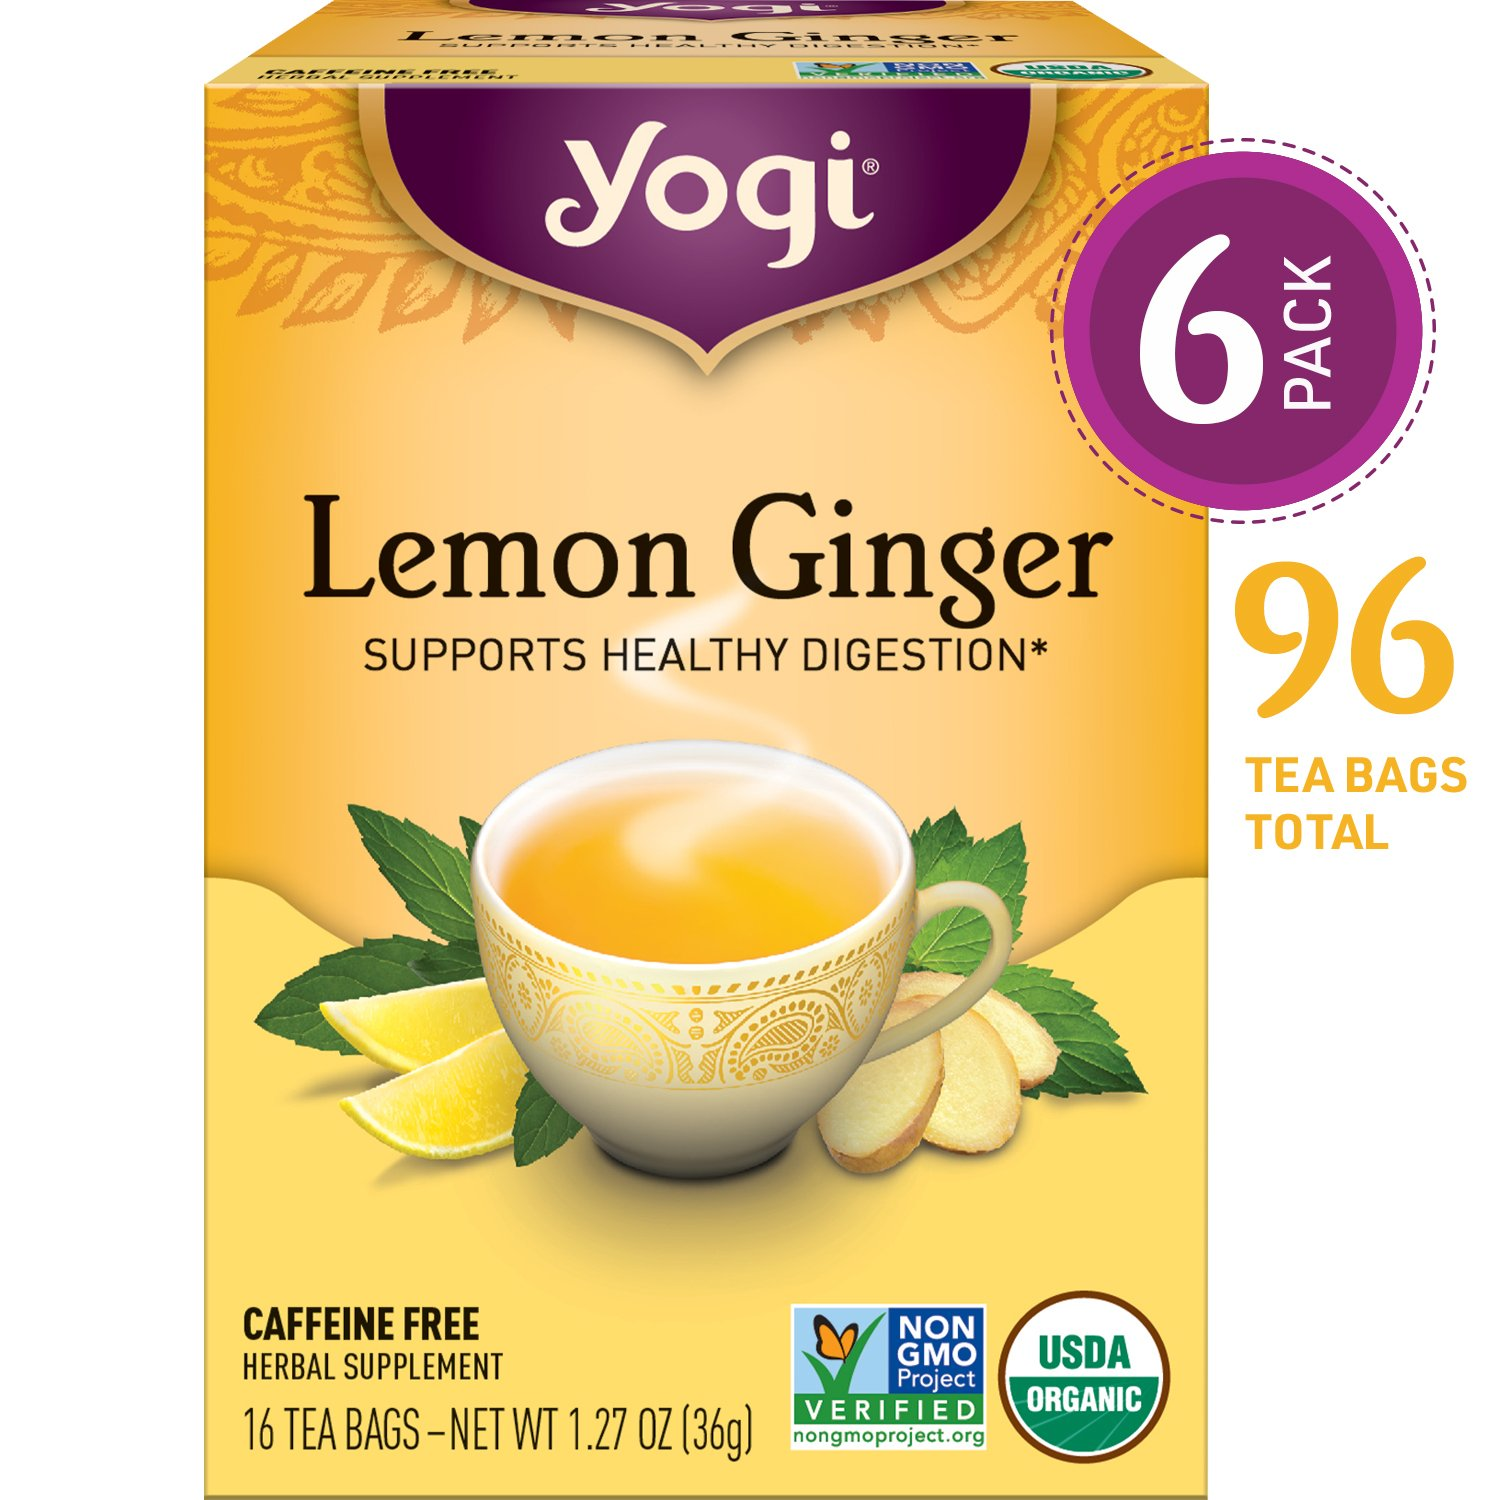 Yogi Tea - Stomach Ease - Supports Healthy Digestion - 6 Pack, 96 Tea Bags Total 076950450035